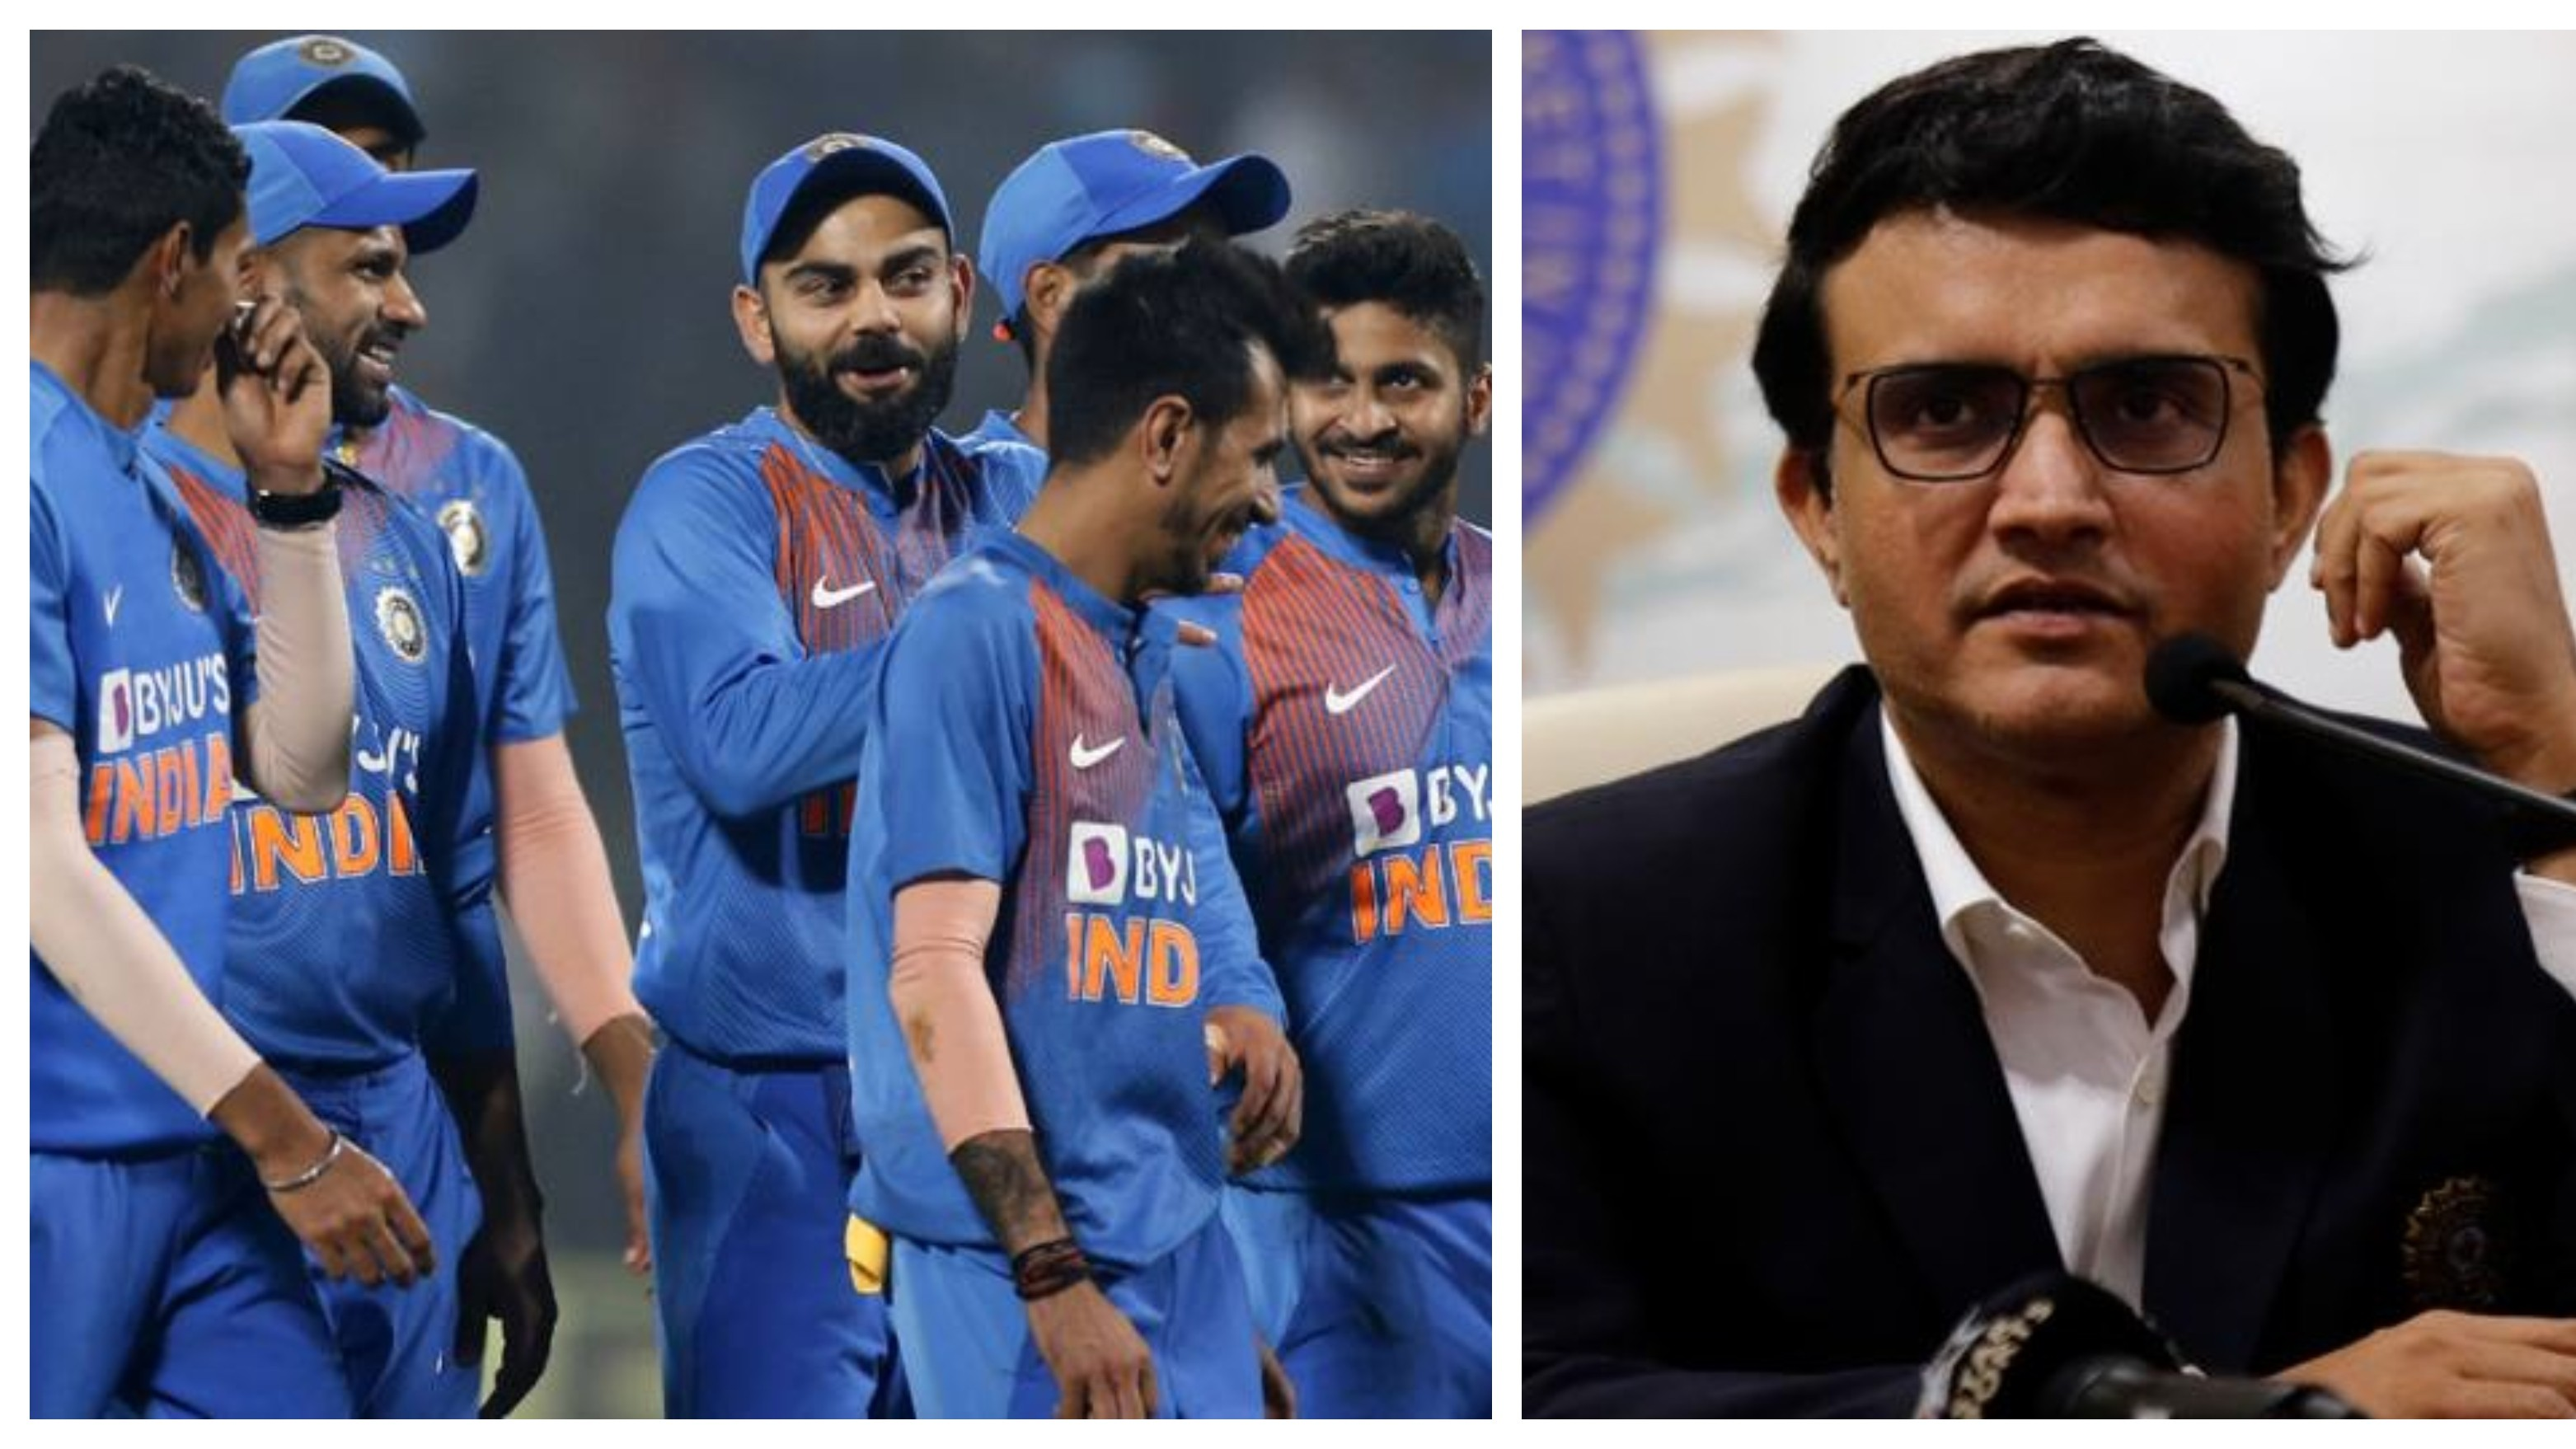 No training camp for Team India before August: BCCI chief Sourav Ganguly